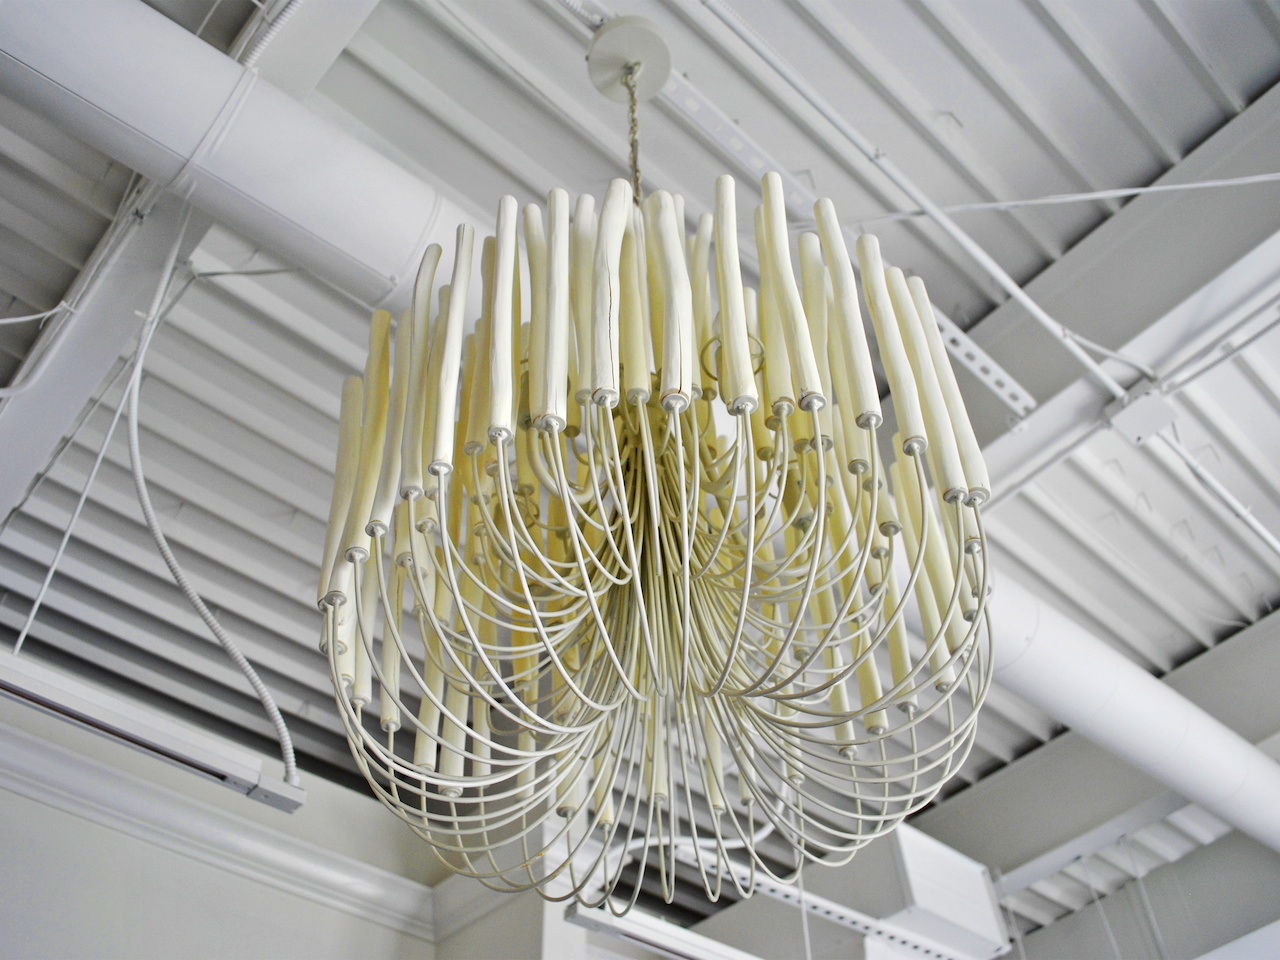 This chandelier of white-washed driftwood is stunning, especially alight in the evenings!